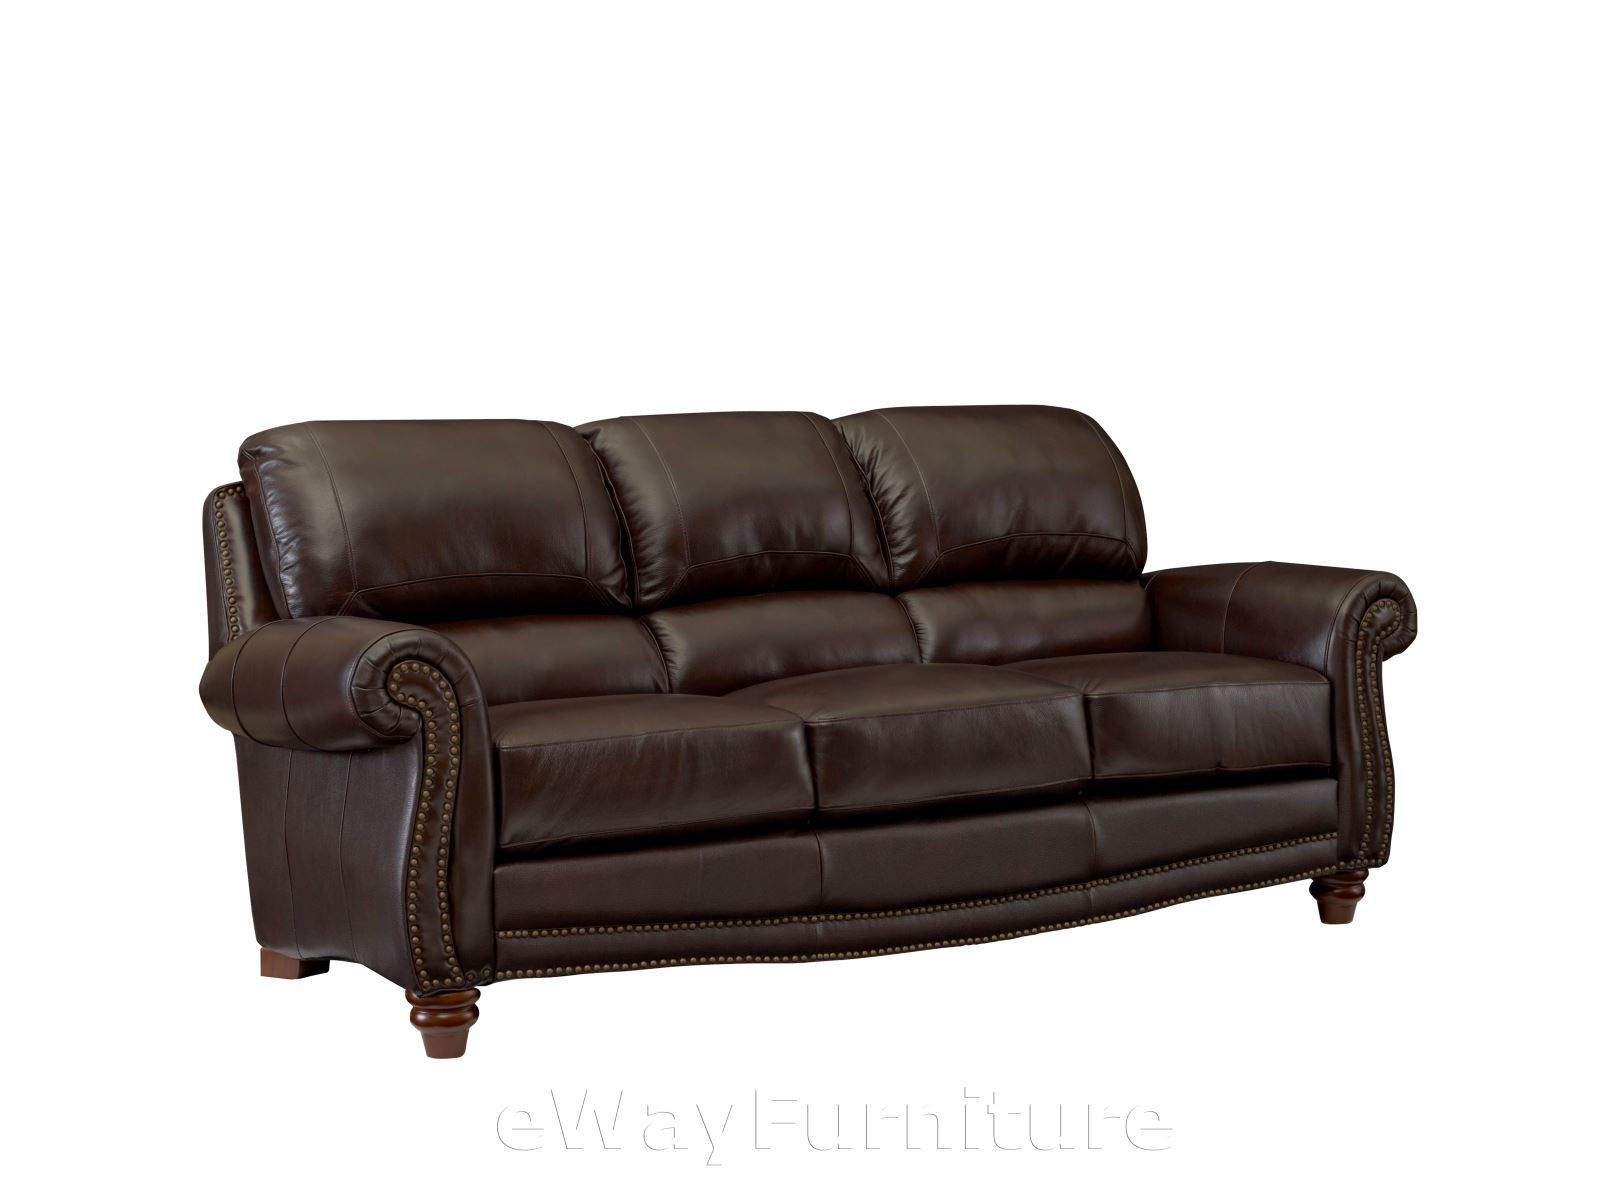 James Top Grain Leather Sofa In Tobacco